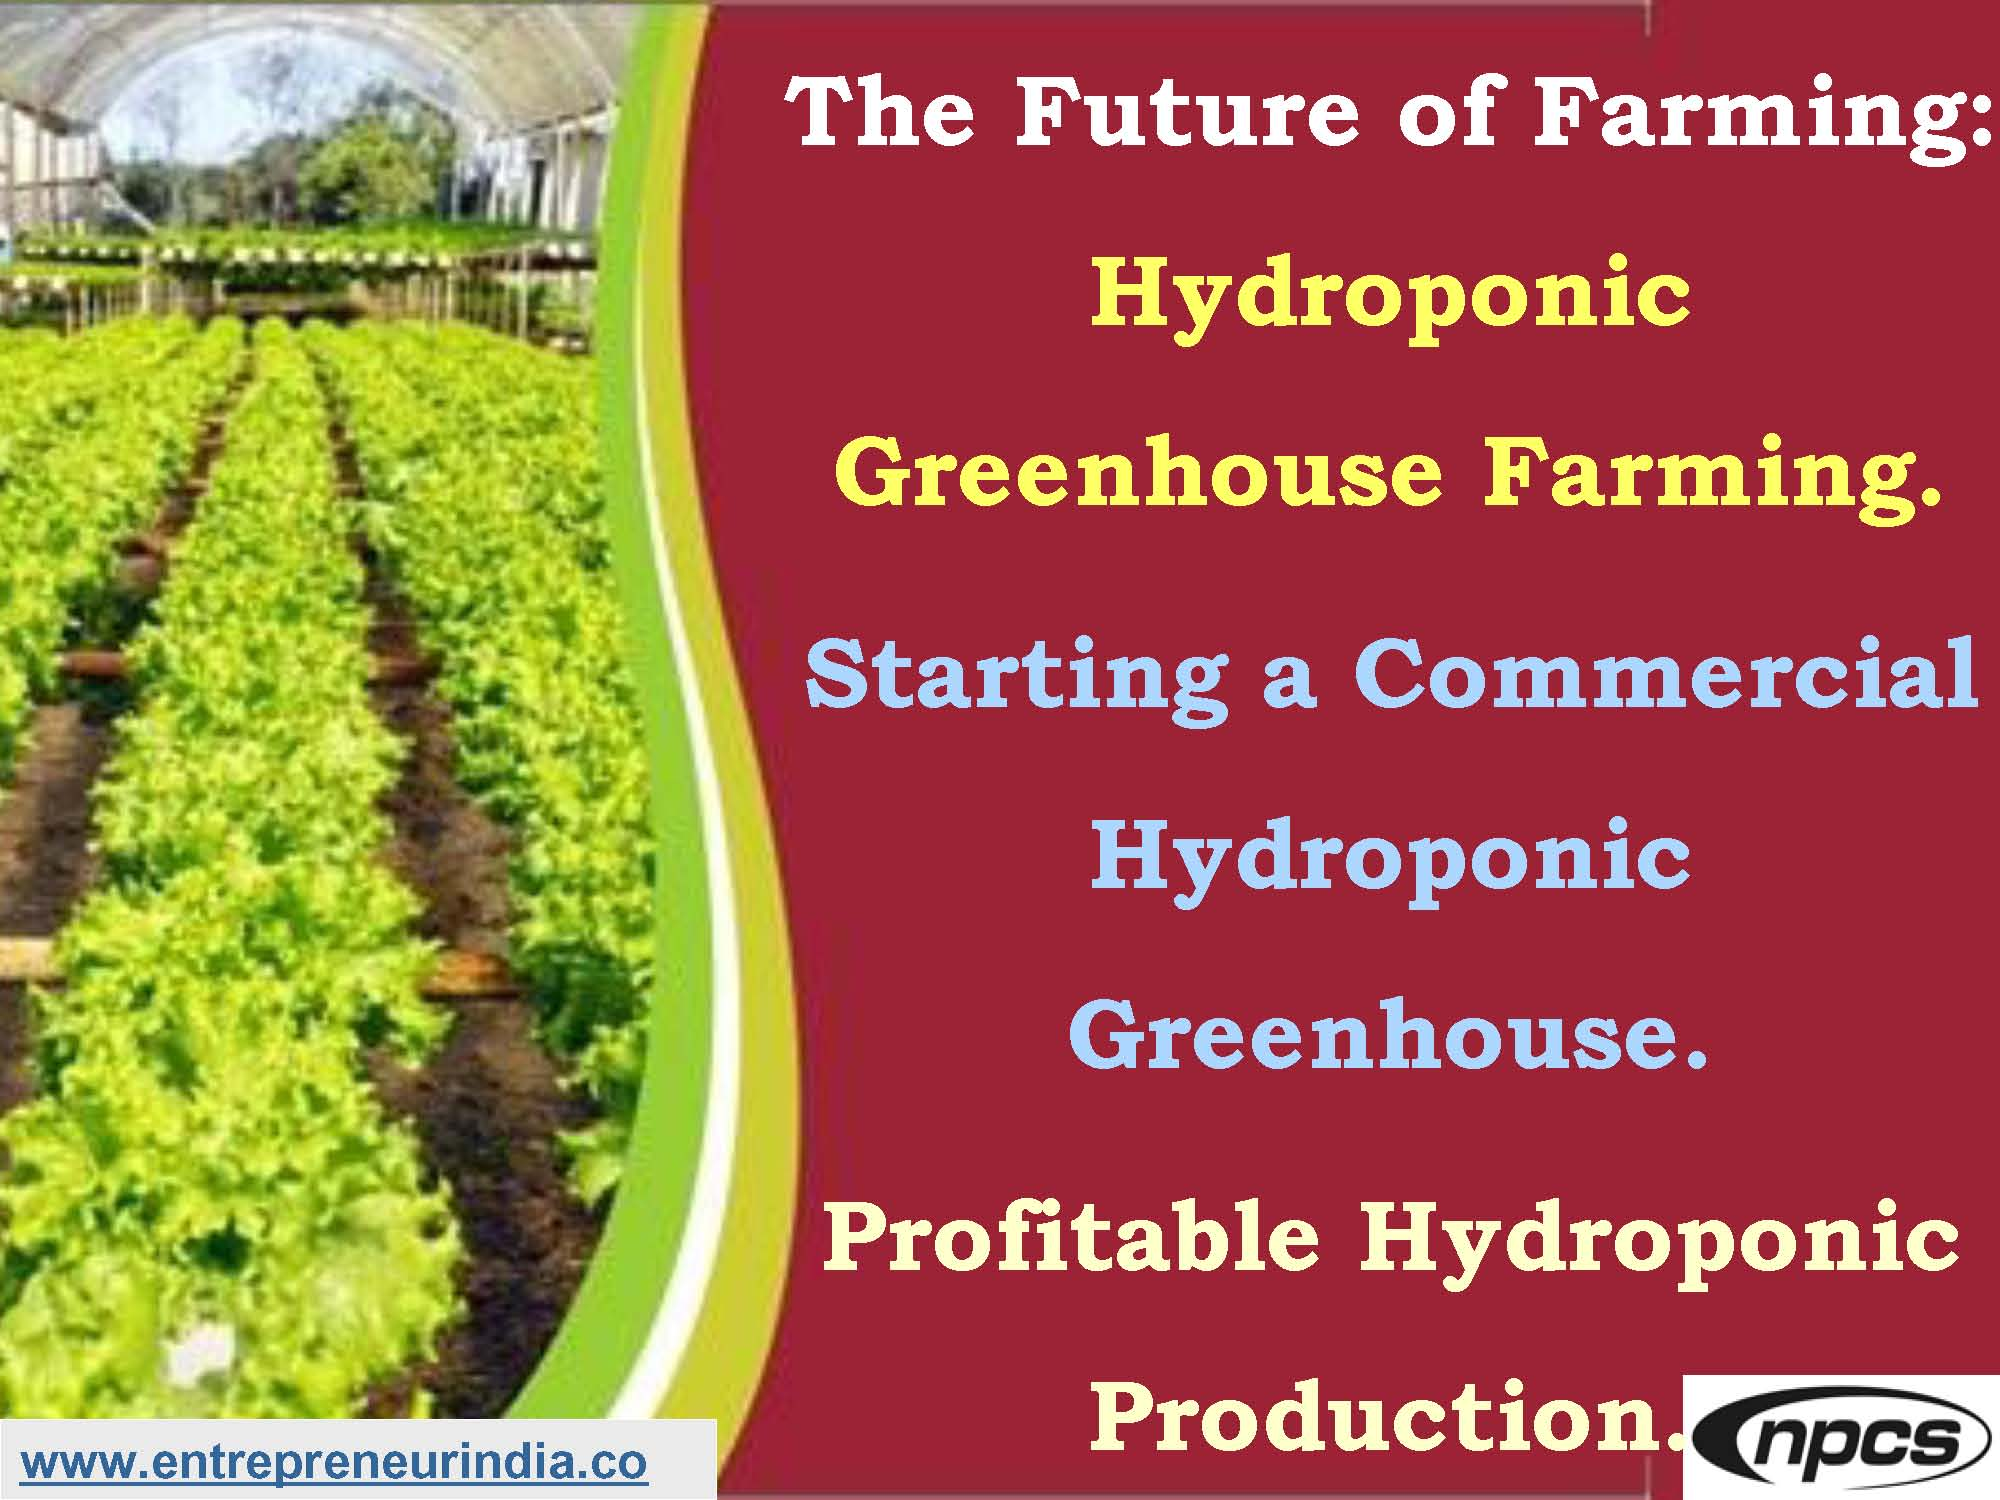 The Future of Farming: Hydroponic Greenhouse Farming